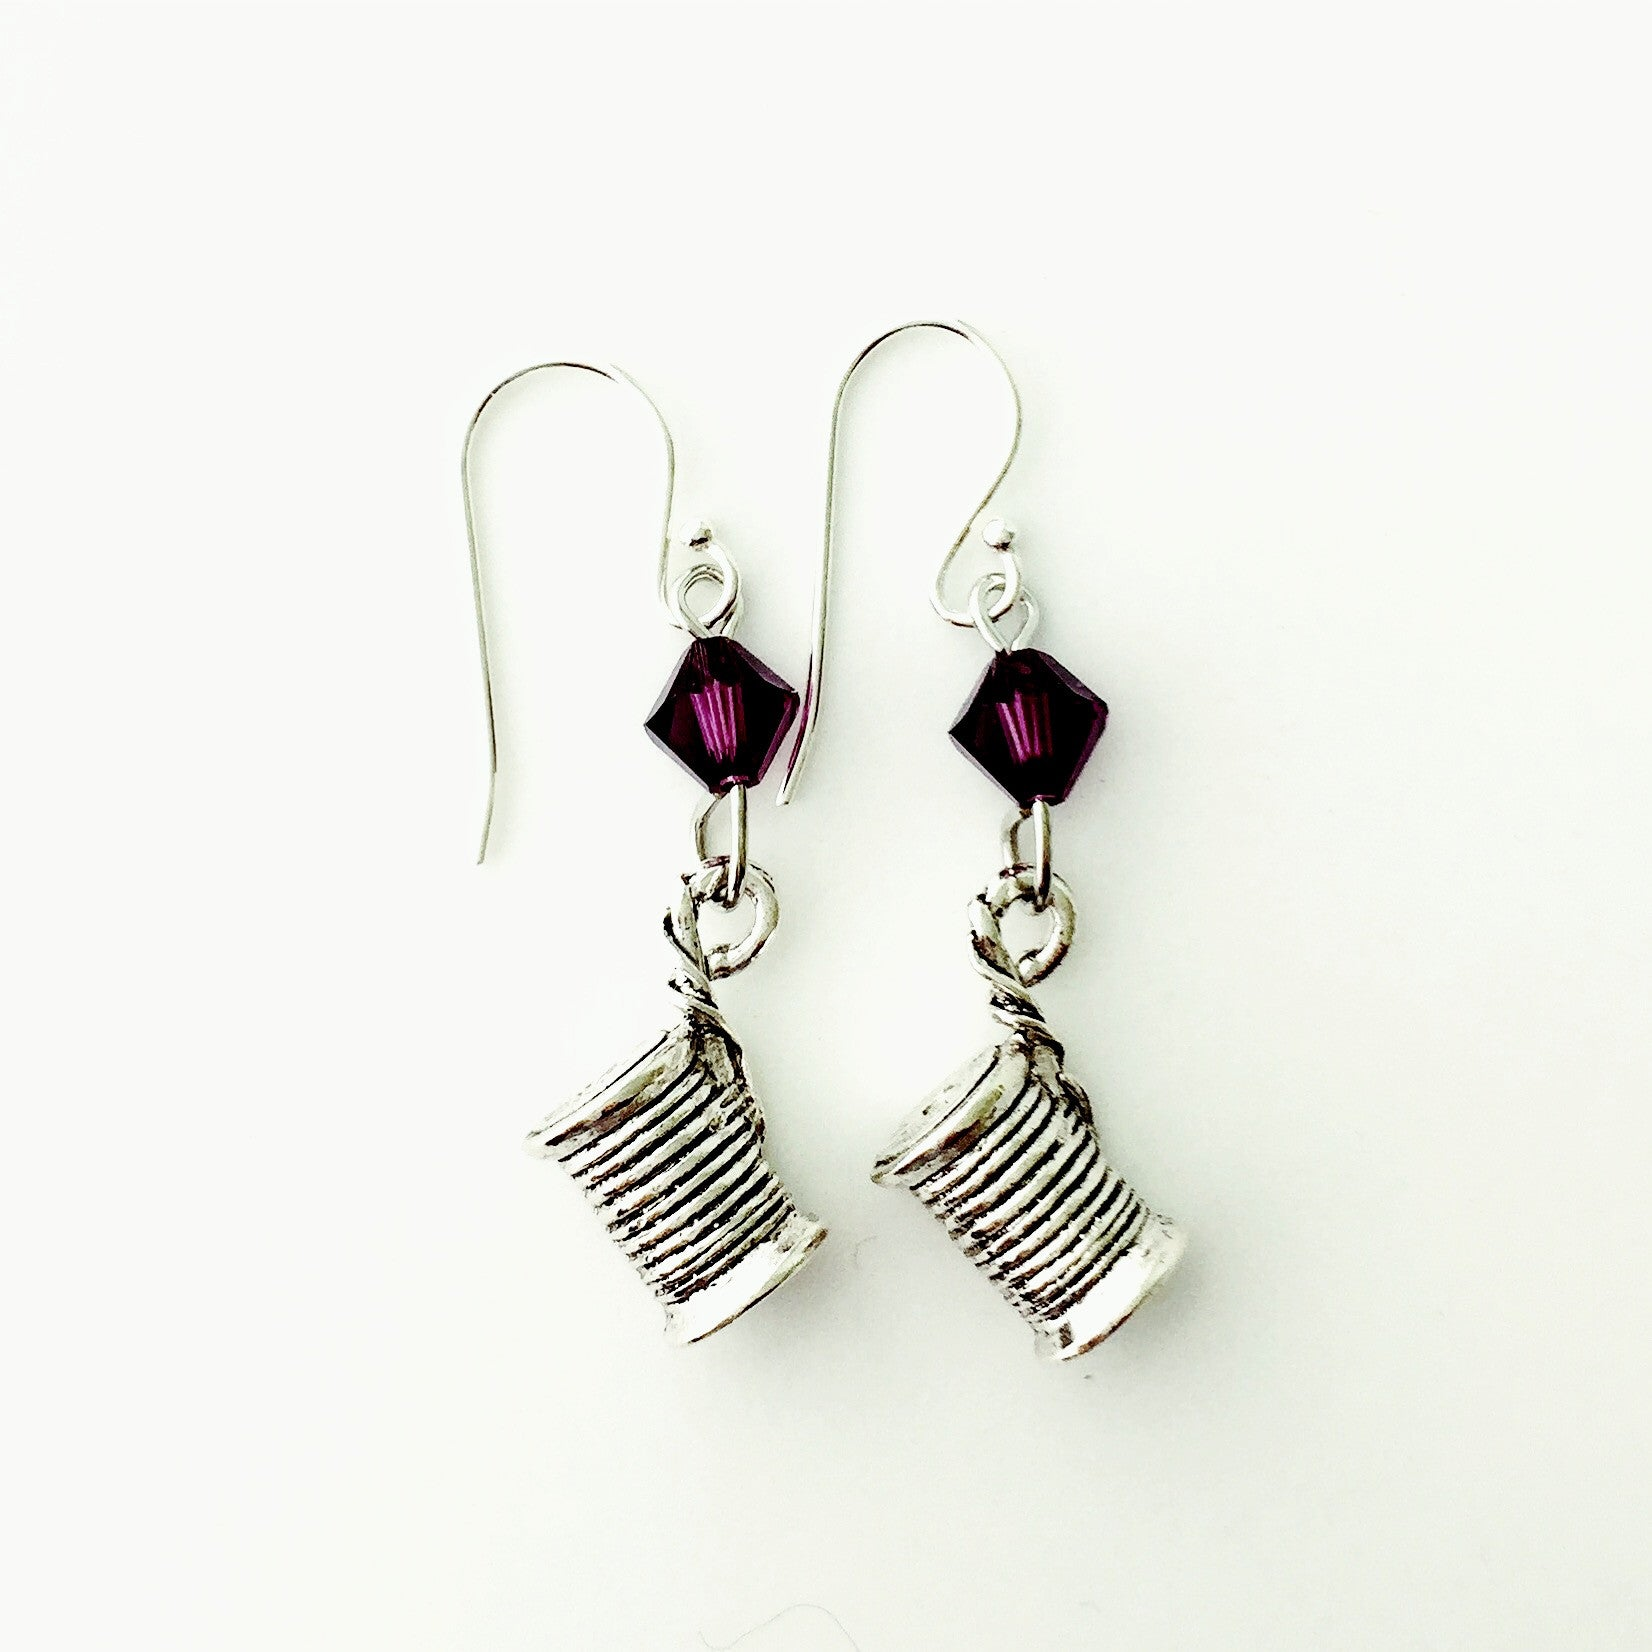 ____ Spool of Thread Silver Earrings with Purple Swarovski Crystals.